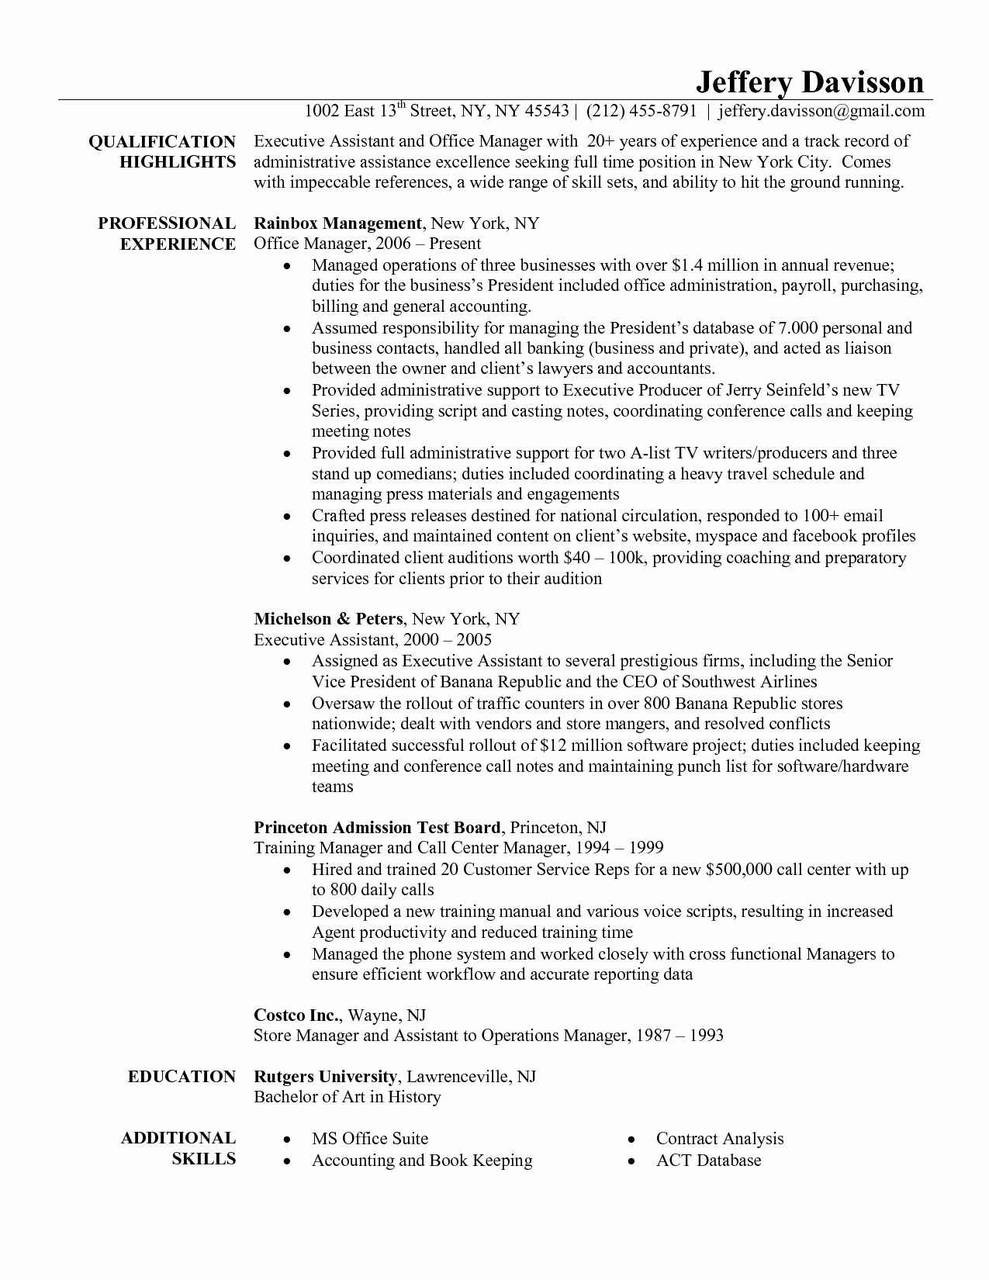 Rutgers Resume Template - Princeton Resume Template Refrence Realtor Job Description Resume